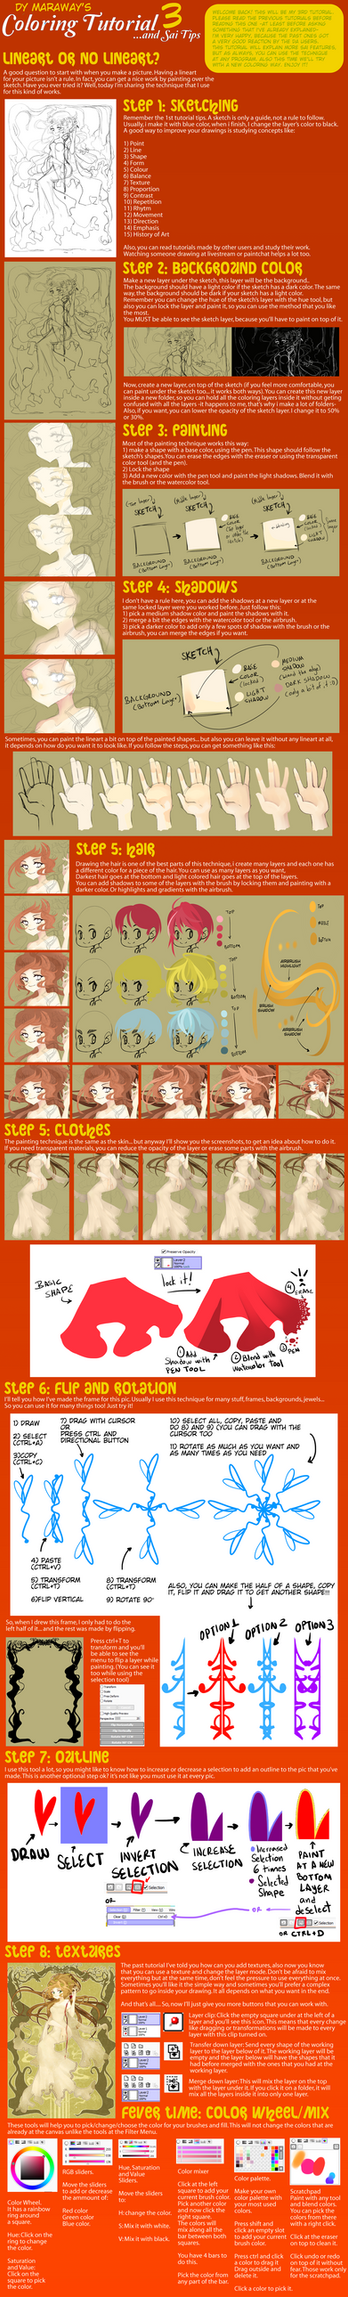 Coloring Tutorial and Sai Tips 3 by DyMaraway